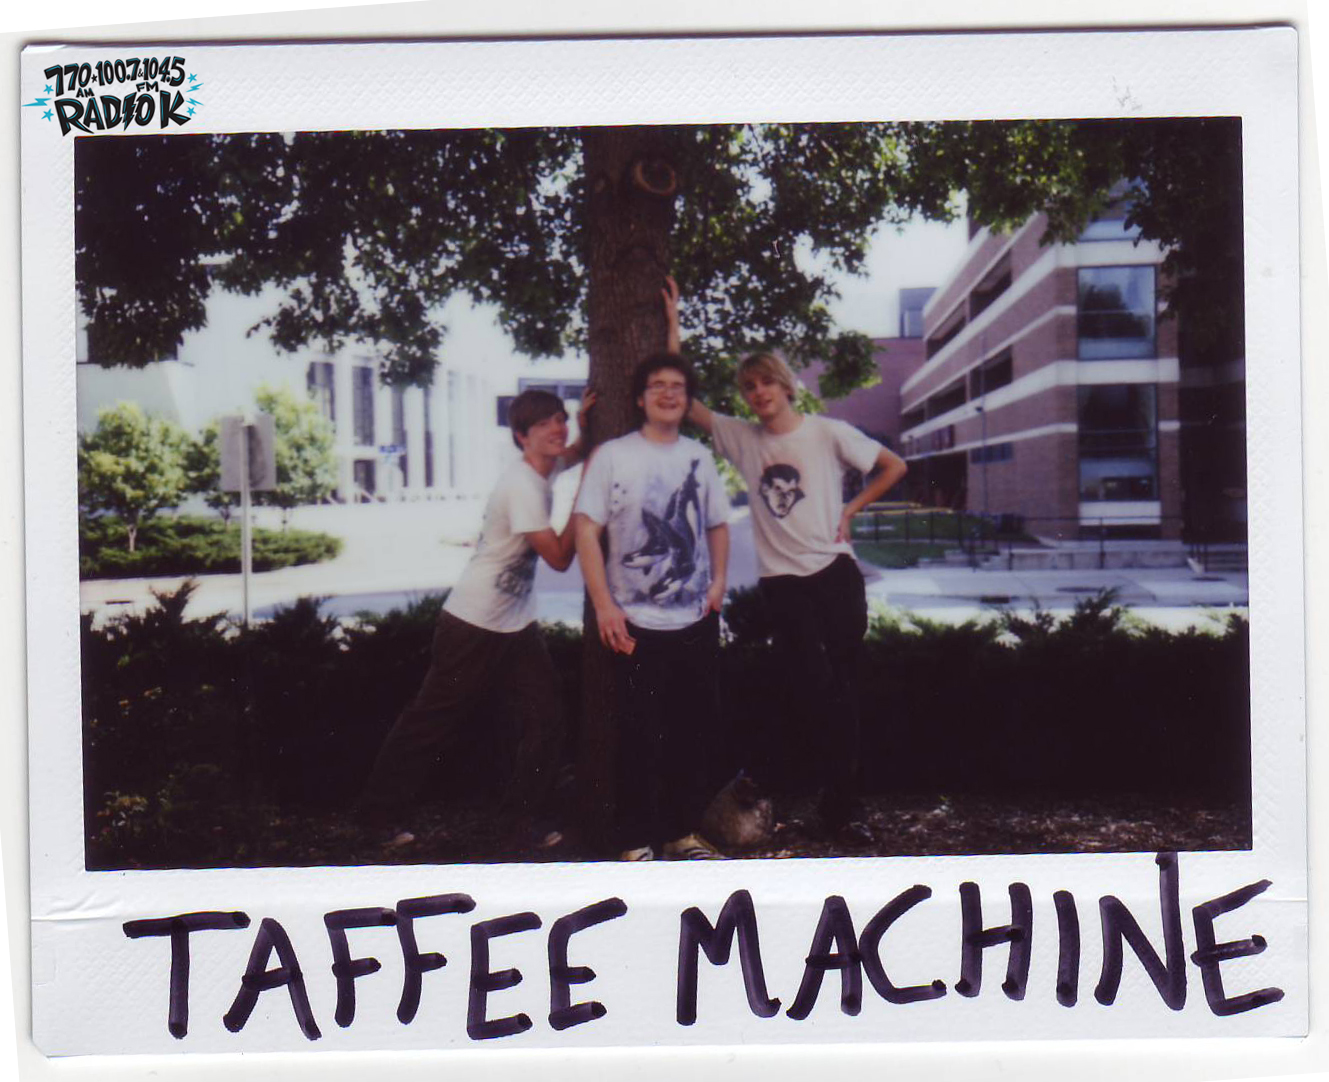 Taffee Machine